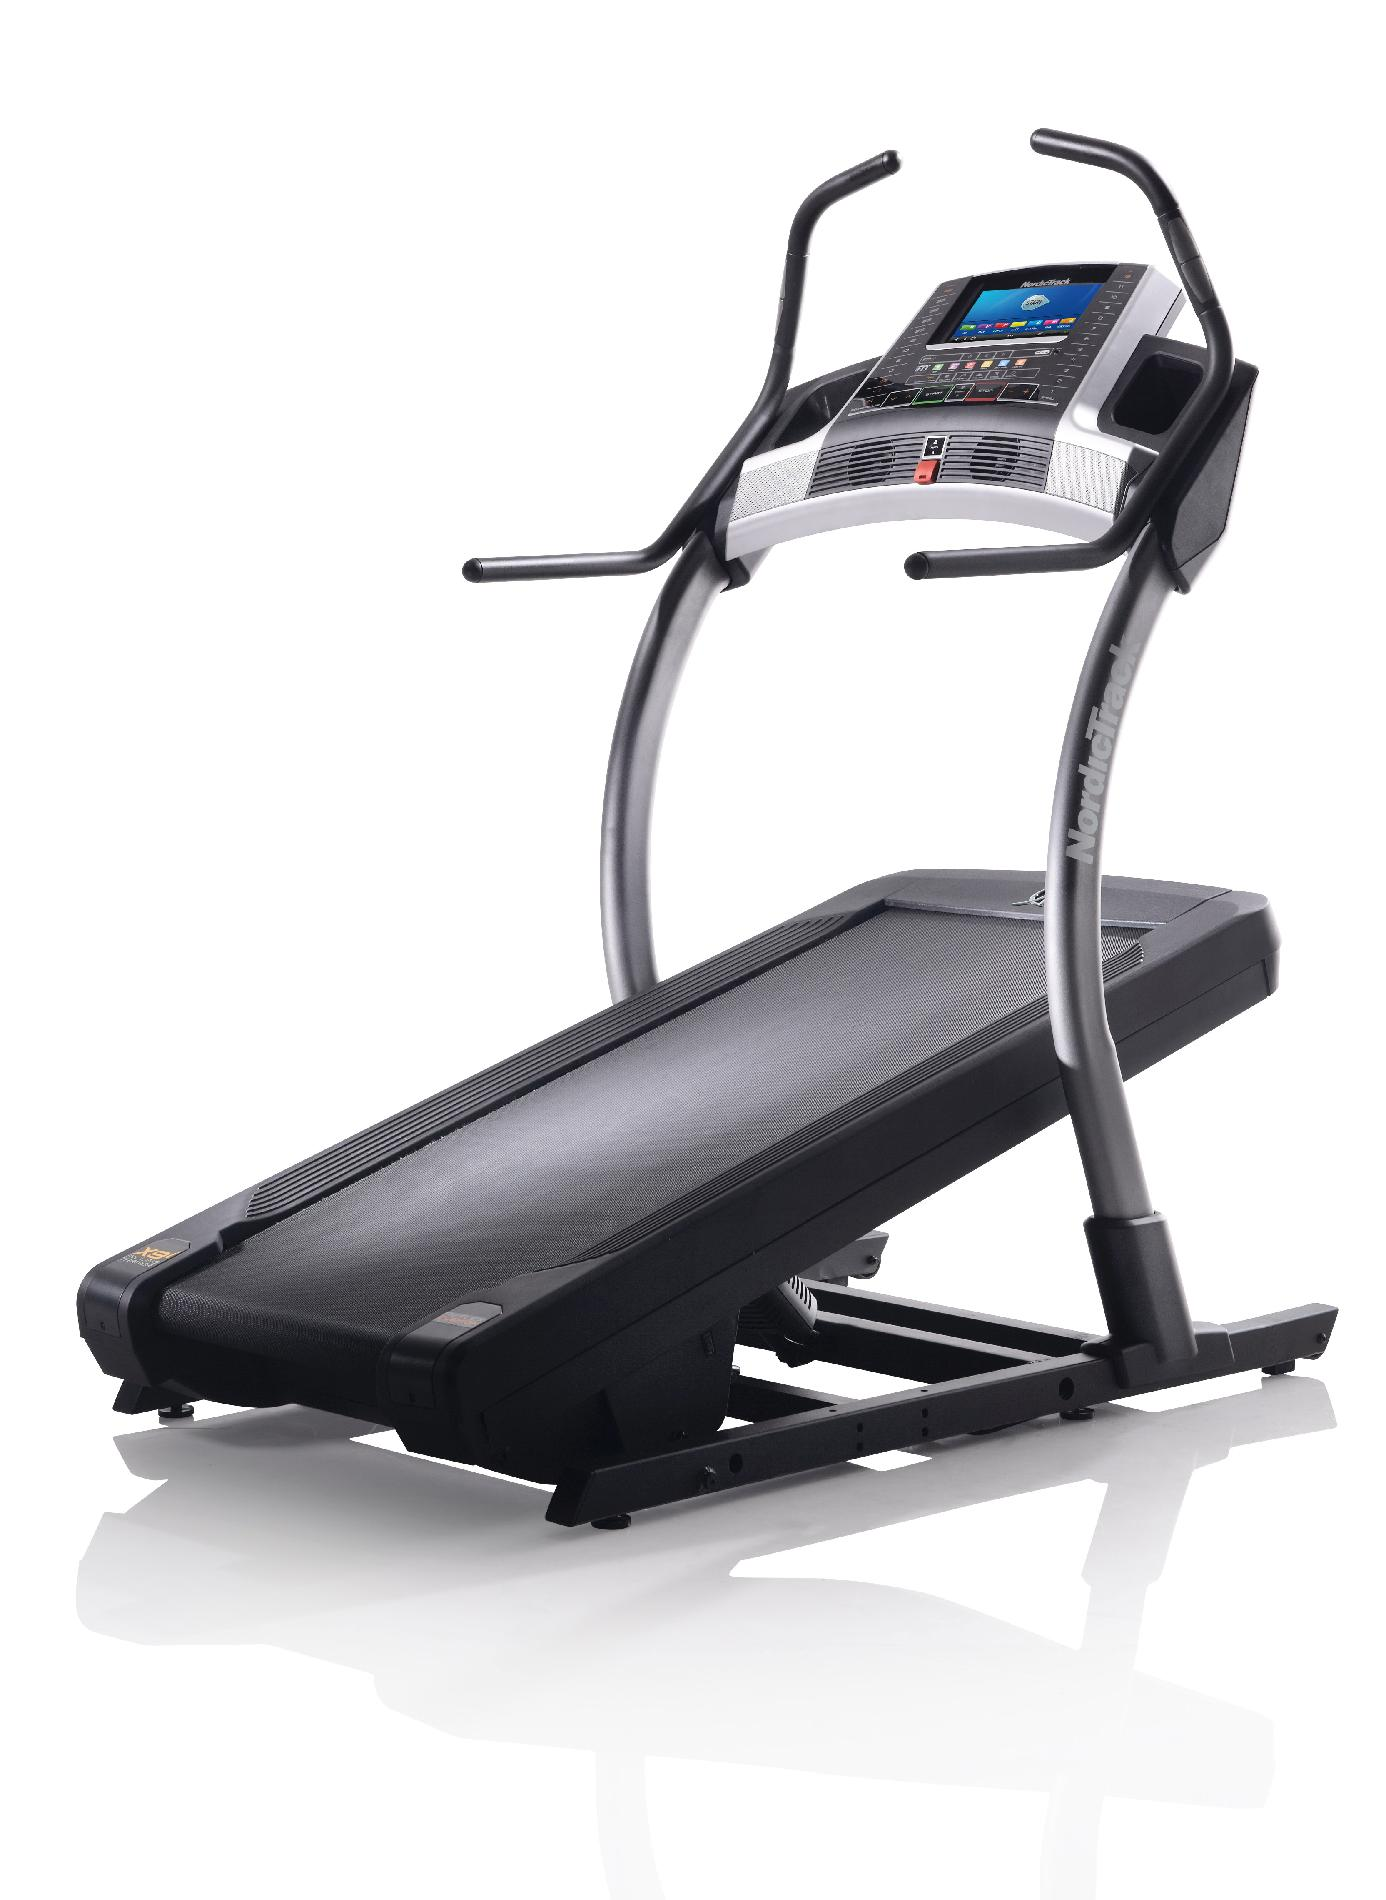 NordicTrack X9I Incline Trainer Treadmill